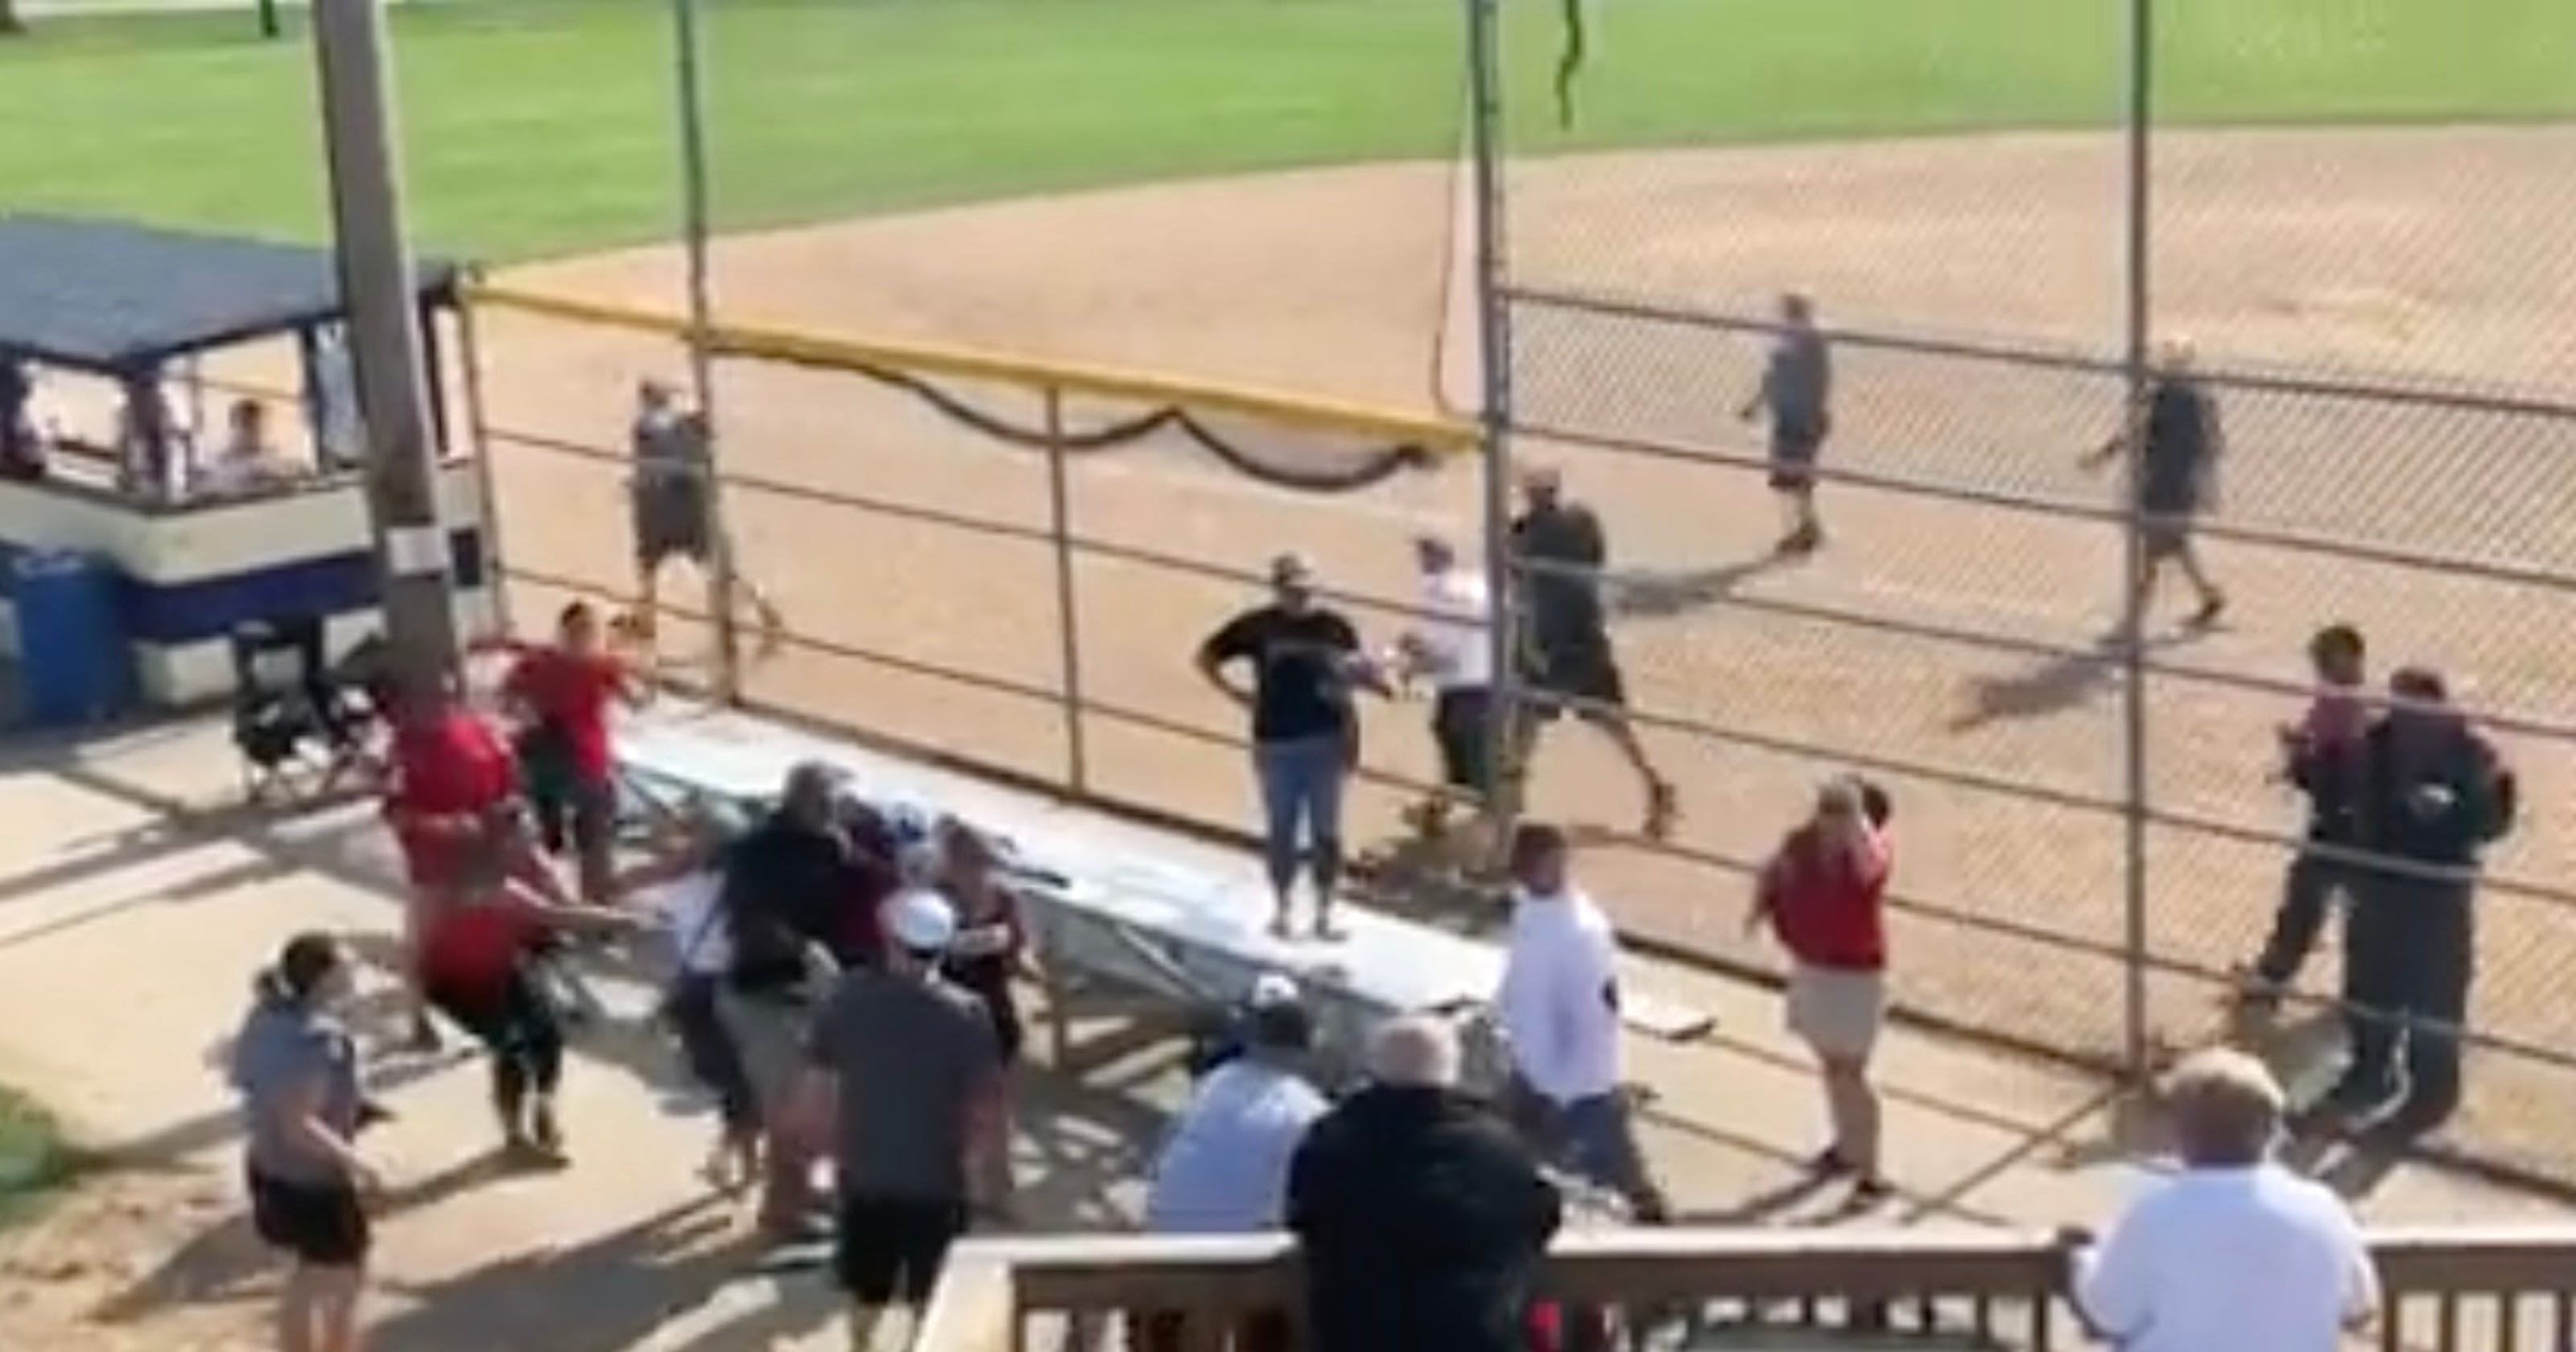 Fight at Indianapolis Sports Park shows intensity of youth